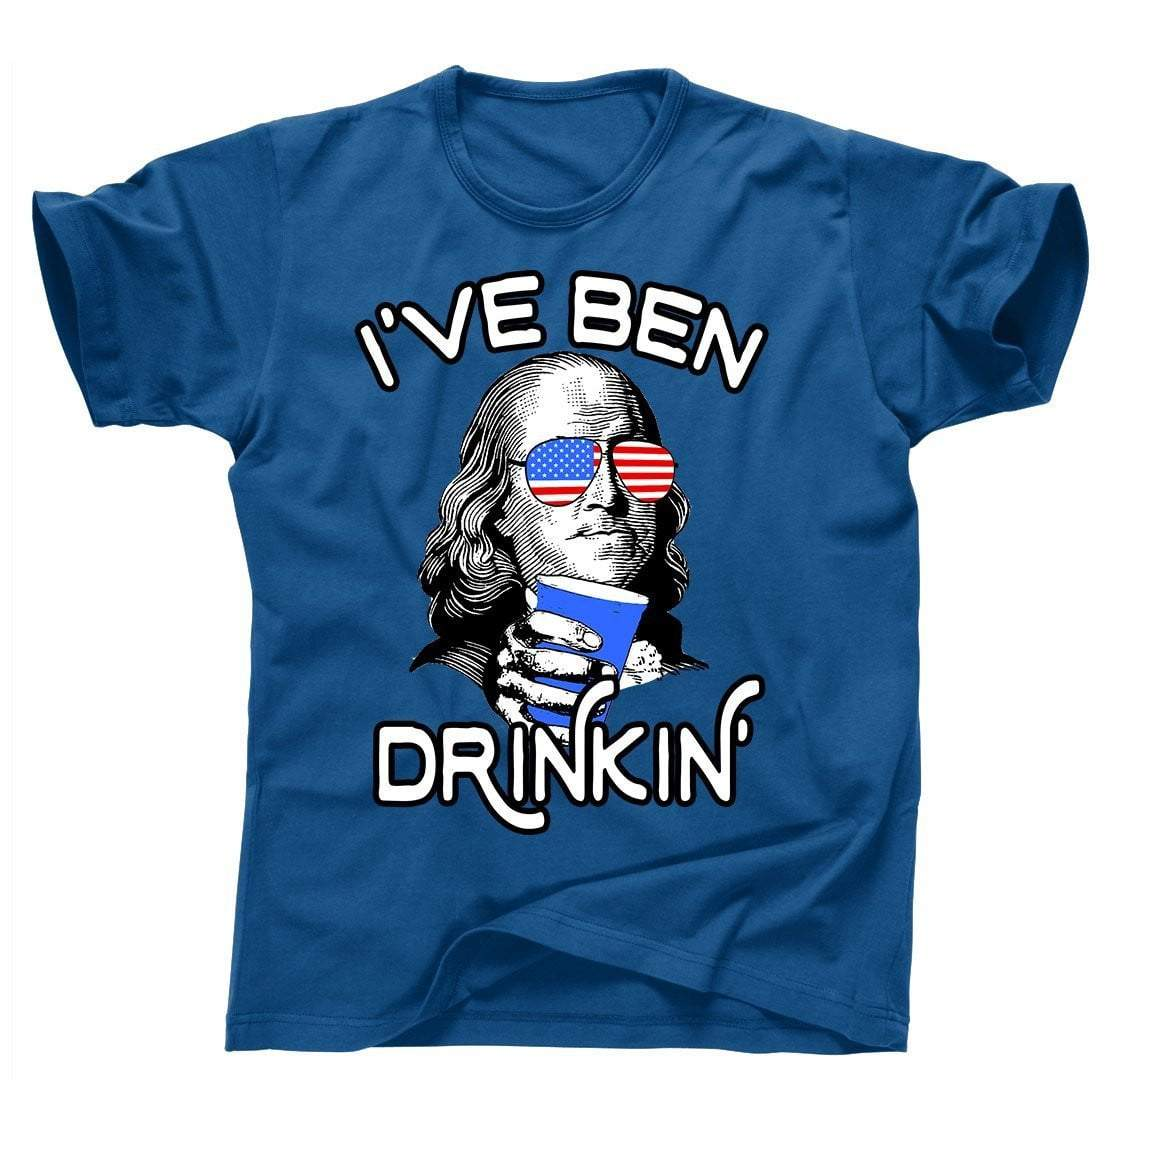 I'VE BEN DRINKIN